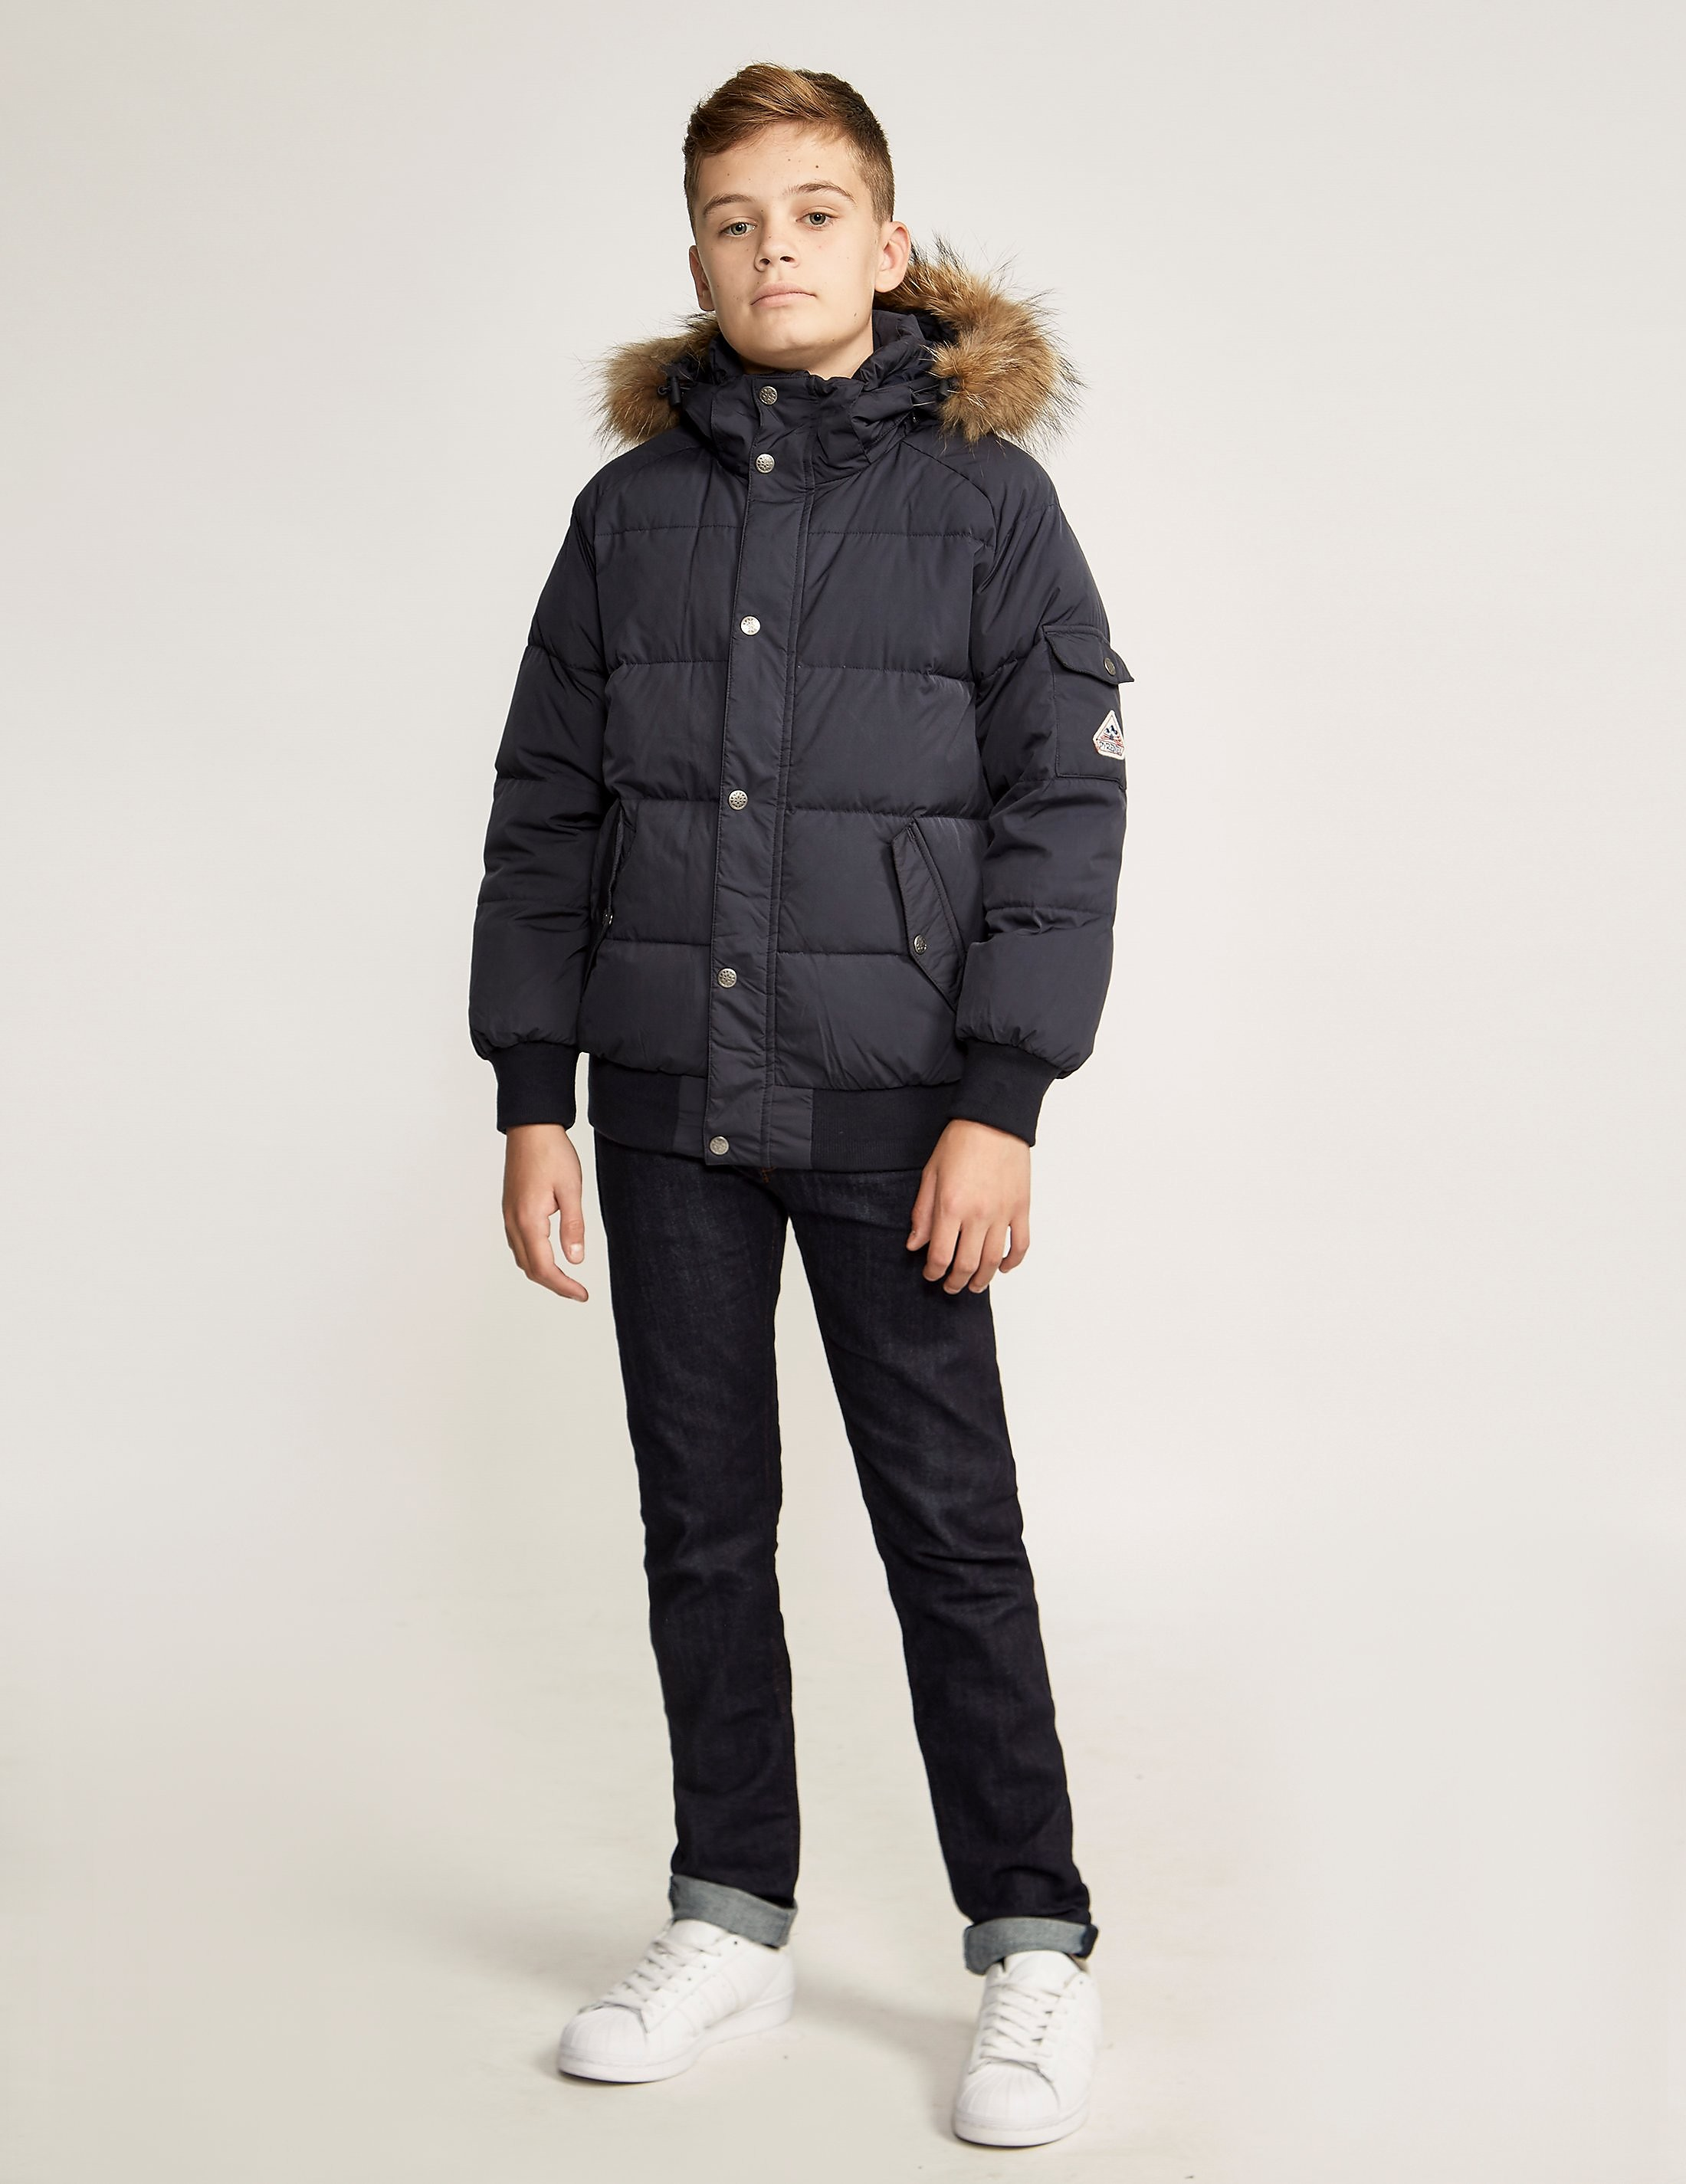 Pyrenex Kids' Aviator Jacket